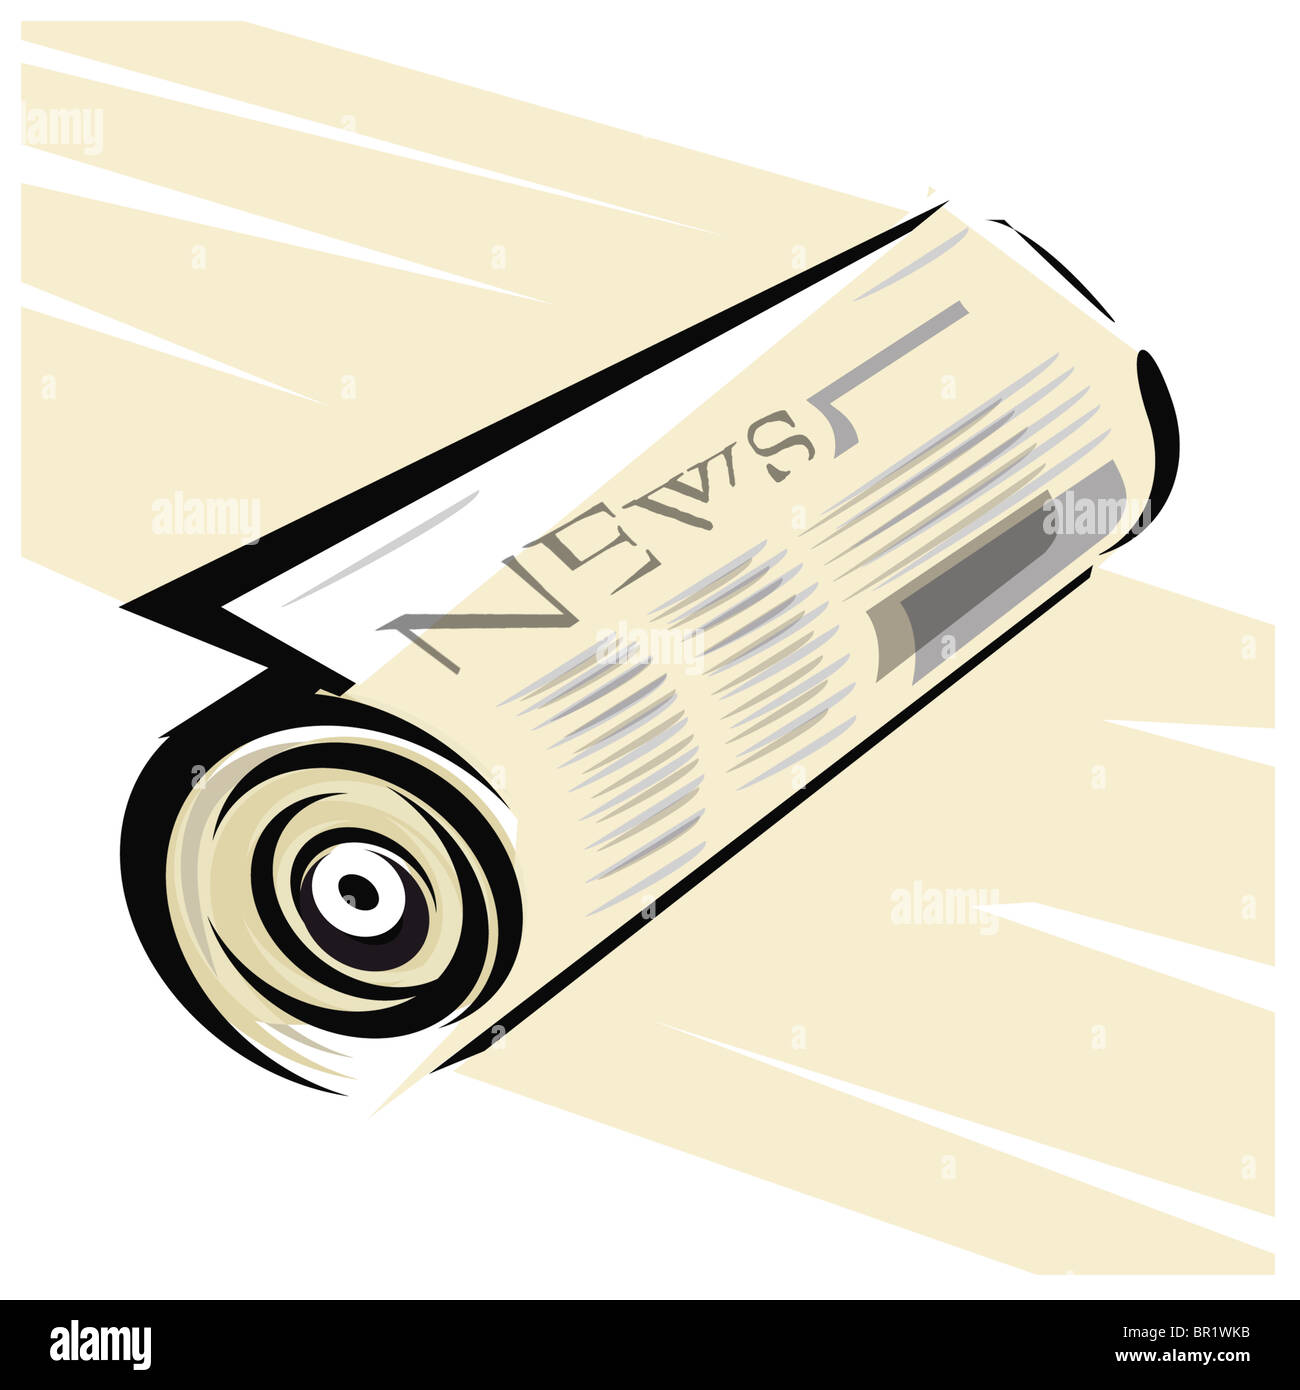 An illustration of a rolled up newspaper - Stock Image